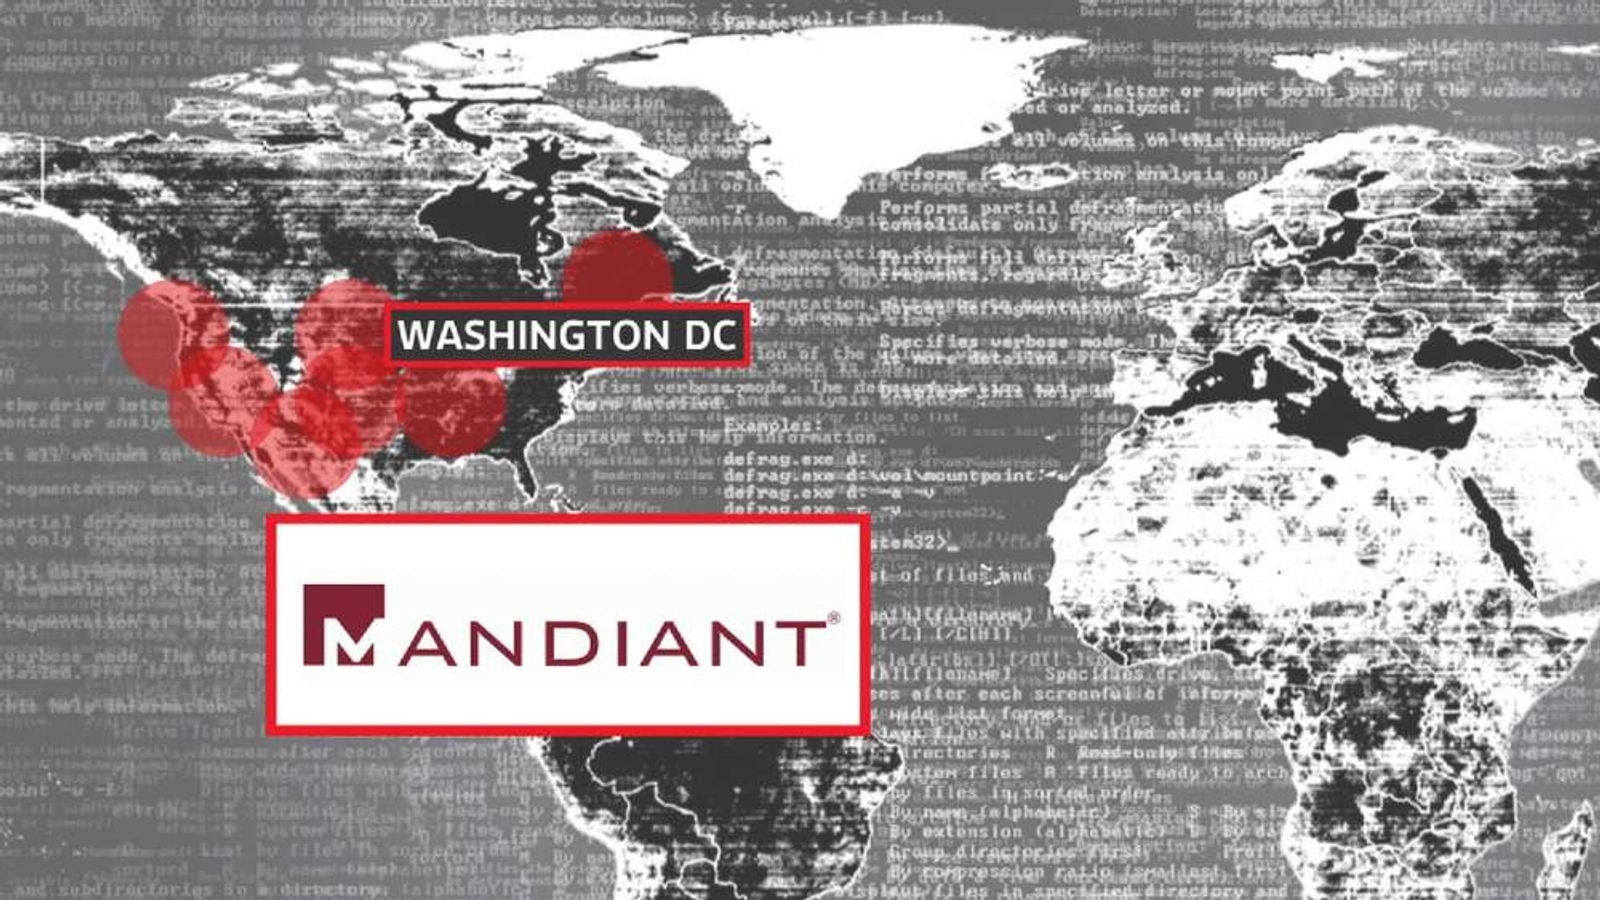 Mandiant accused Chinese of spying